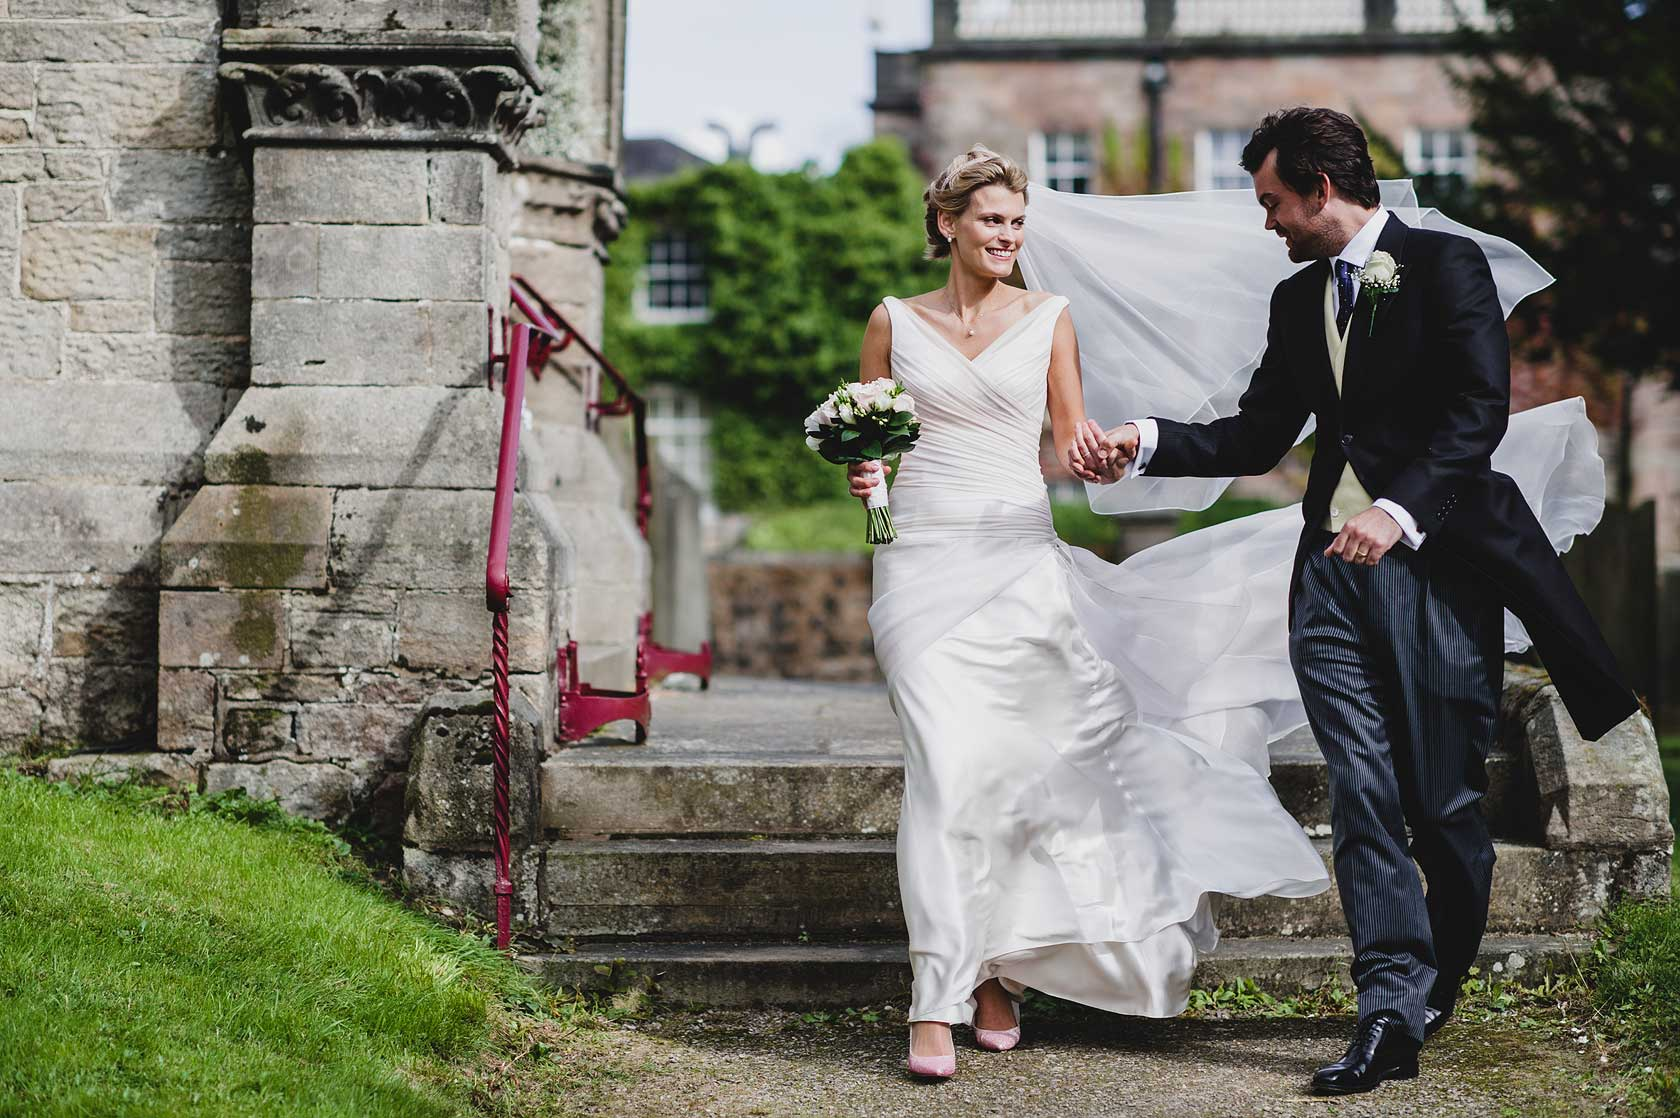 Reportage Wedding Photography in Harrogate